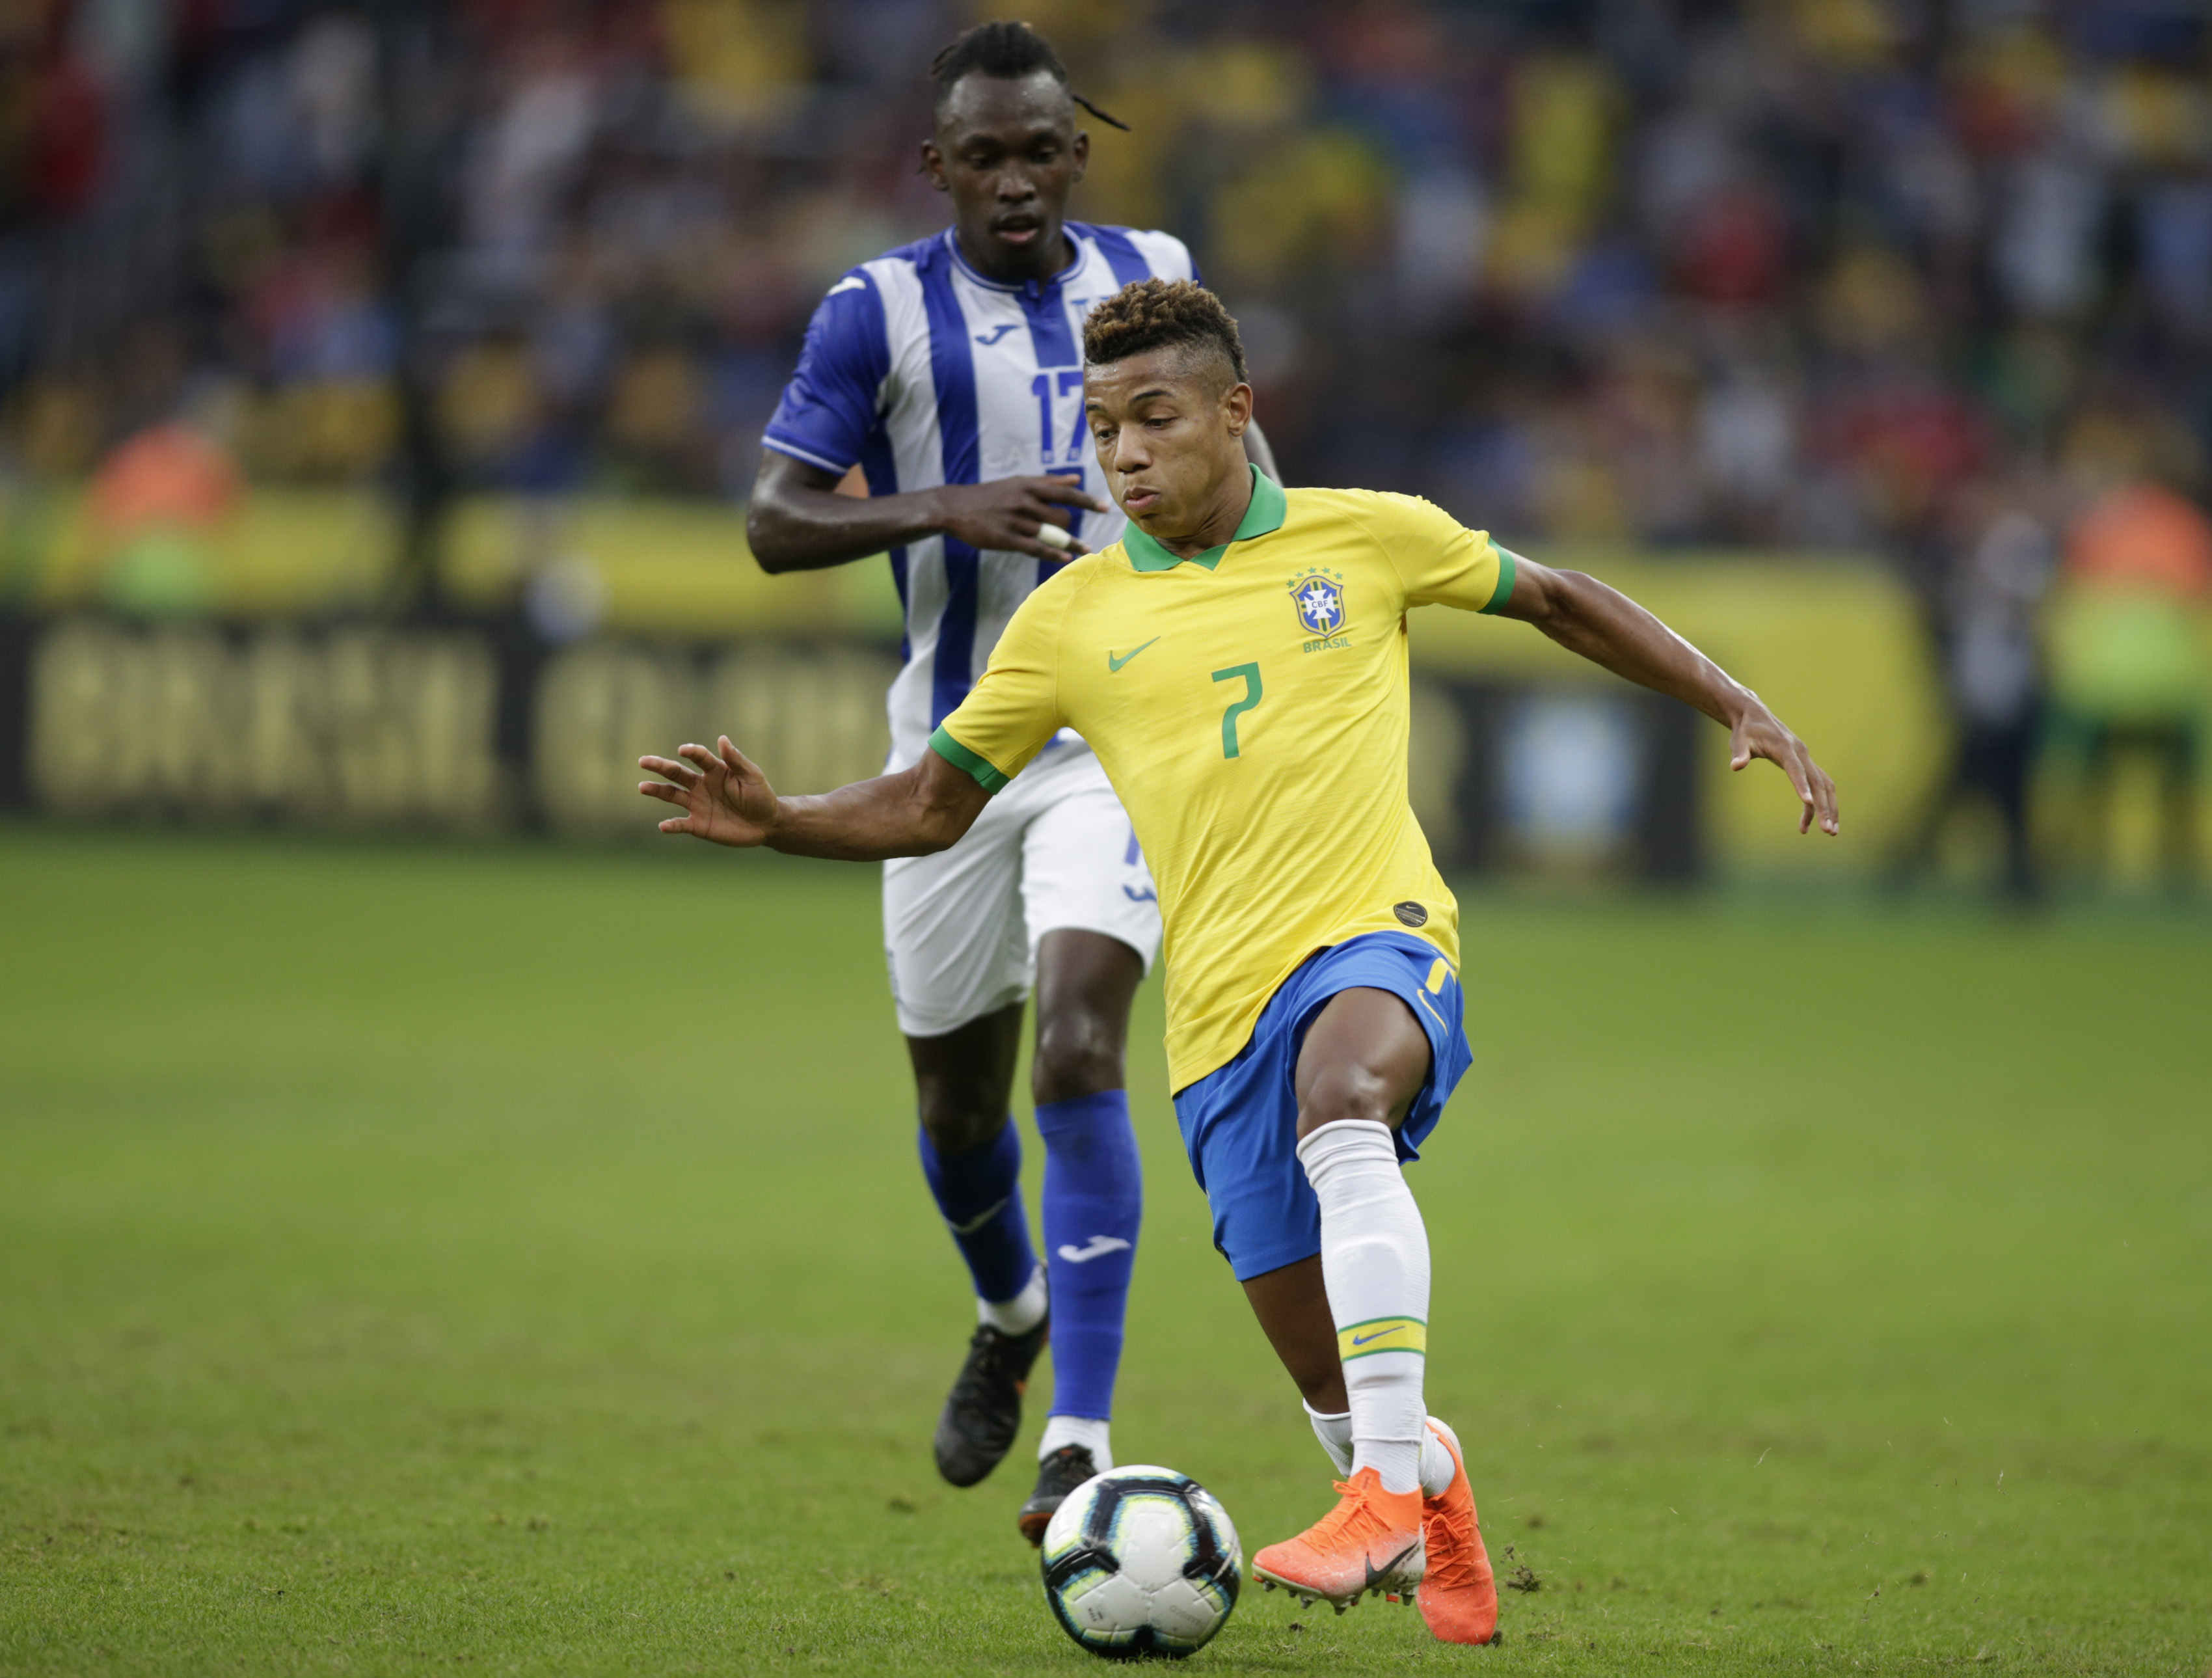 Neres set to replace Neymar for Brazil at Copa America